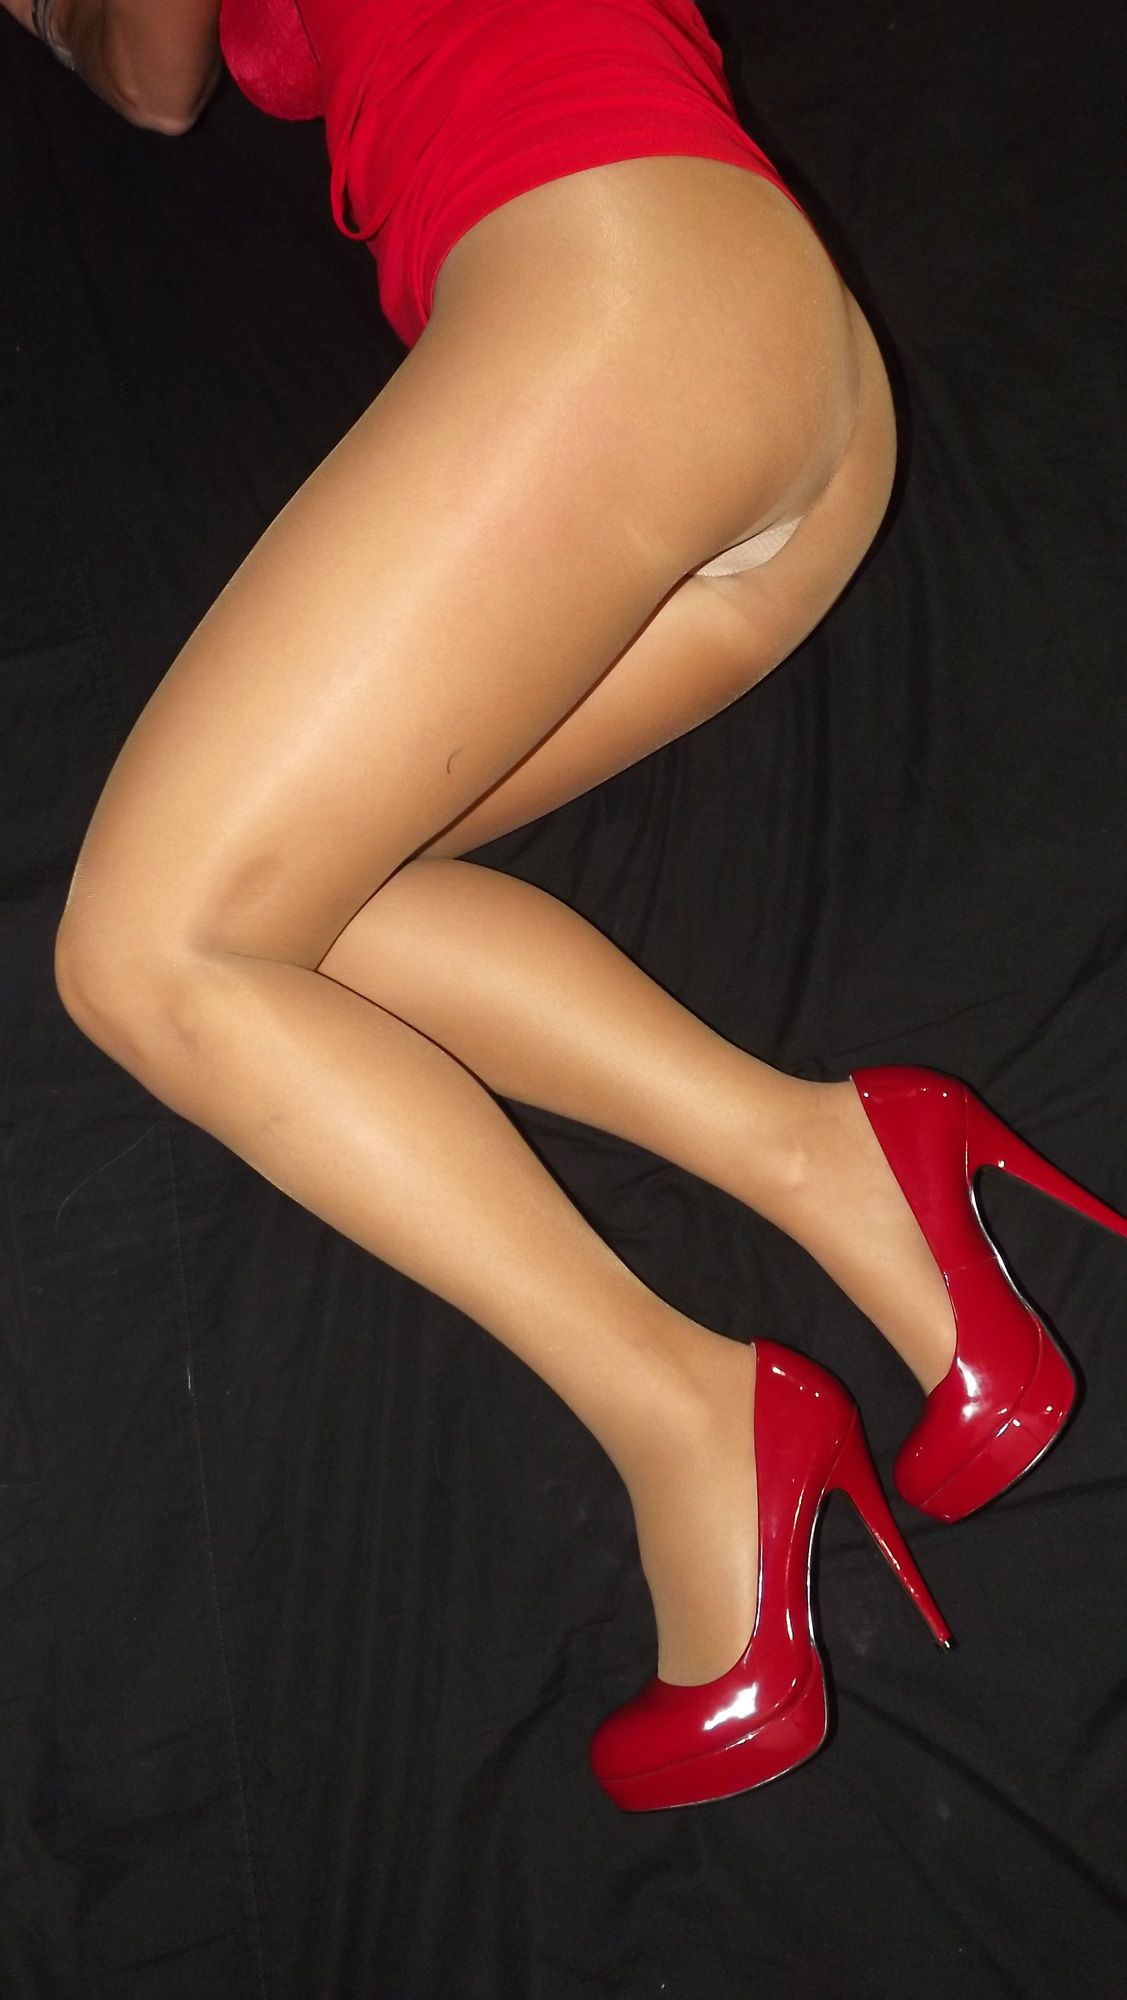 Have removed Red high heels and stockings porn images healthy!